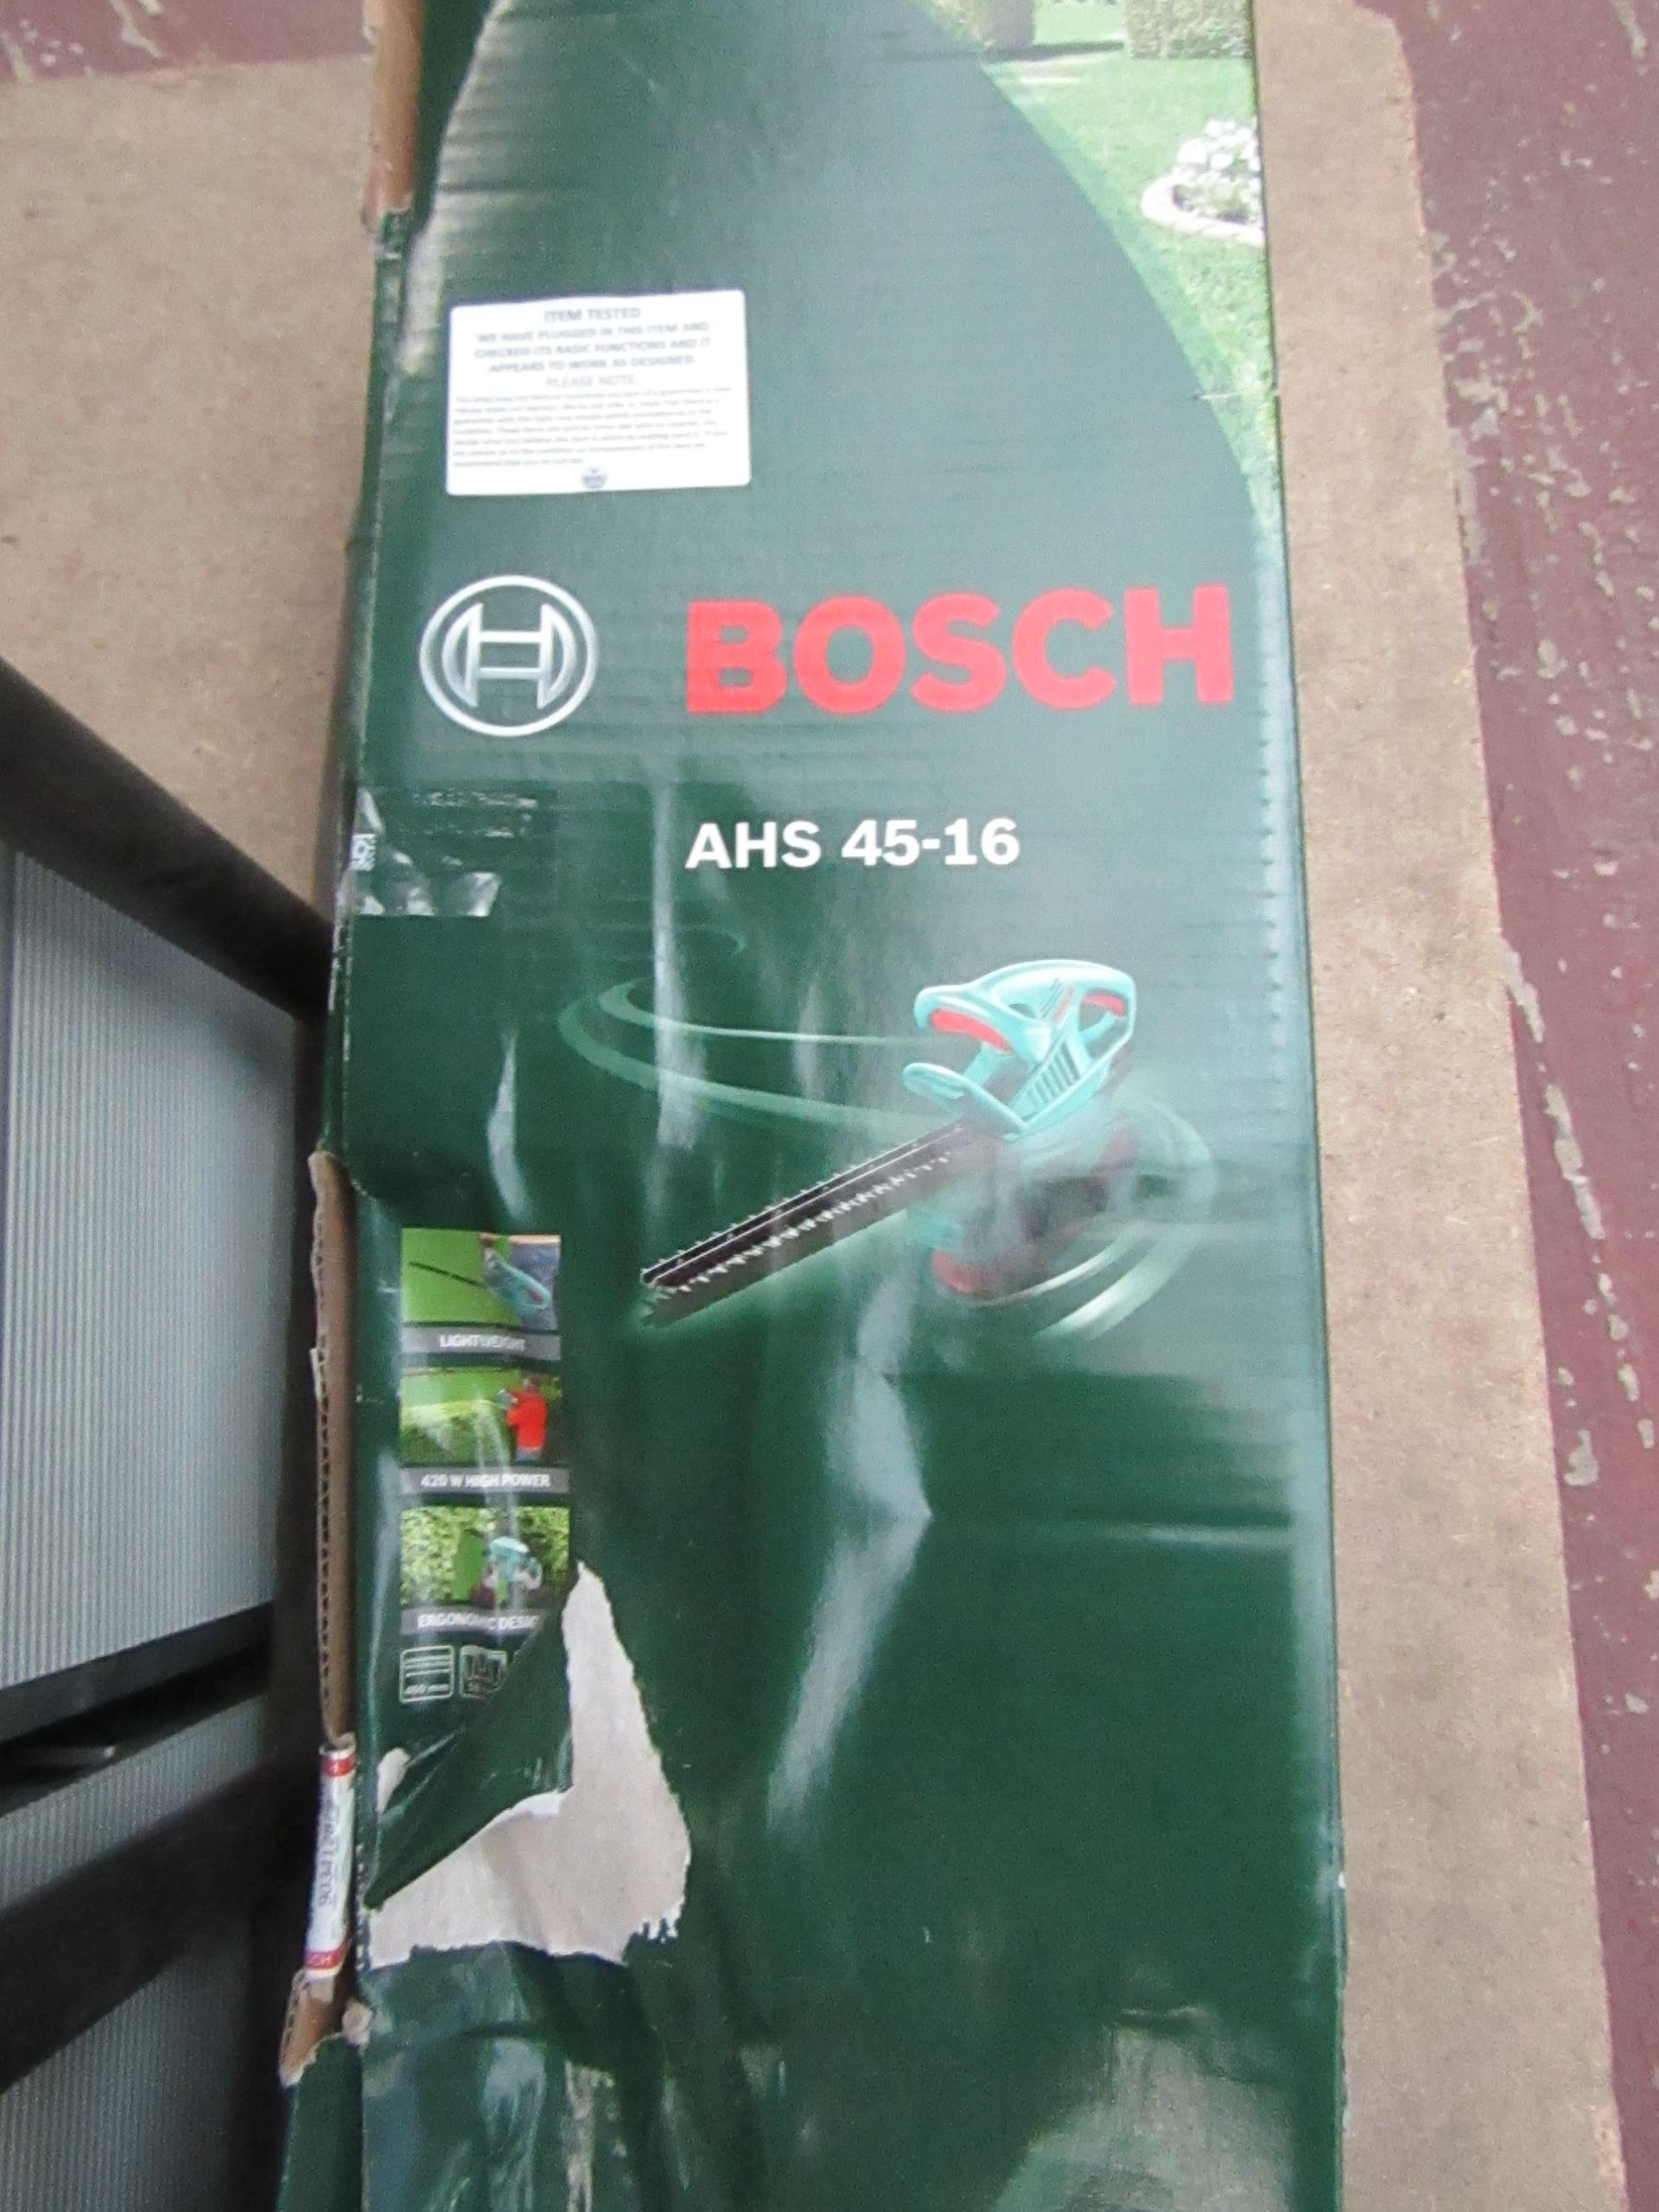 Lot 64 - Bosch AHS 45-16 hedge trimmer, tested working and boxed.